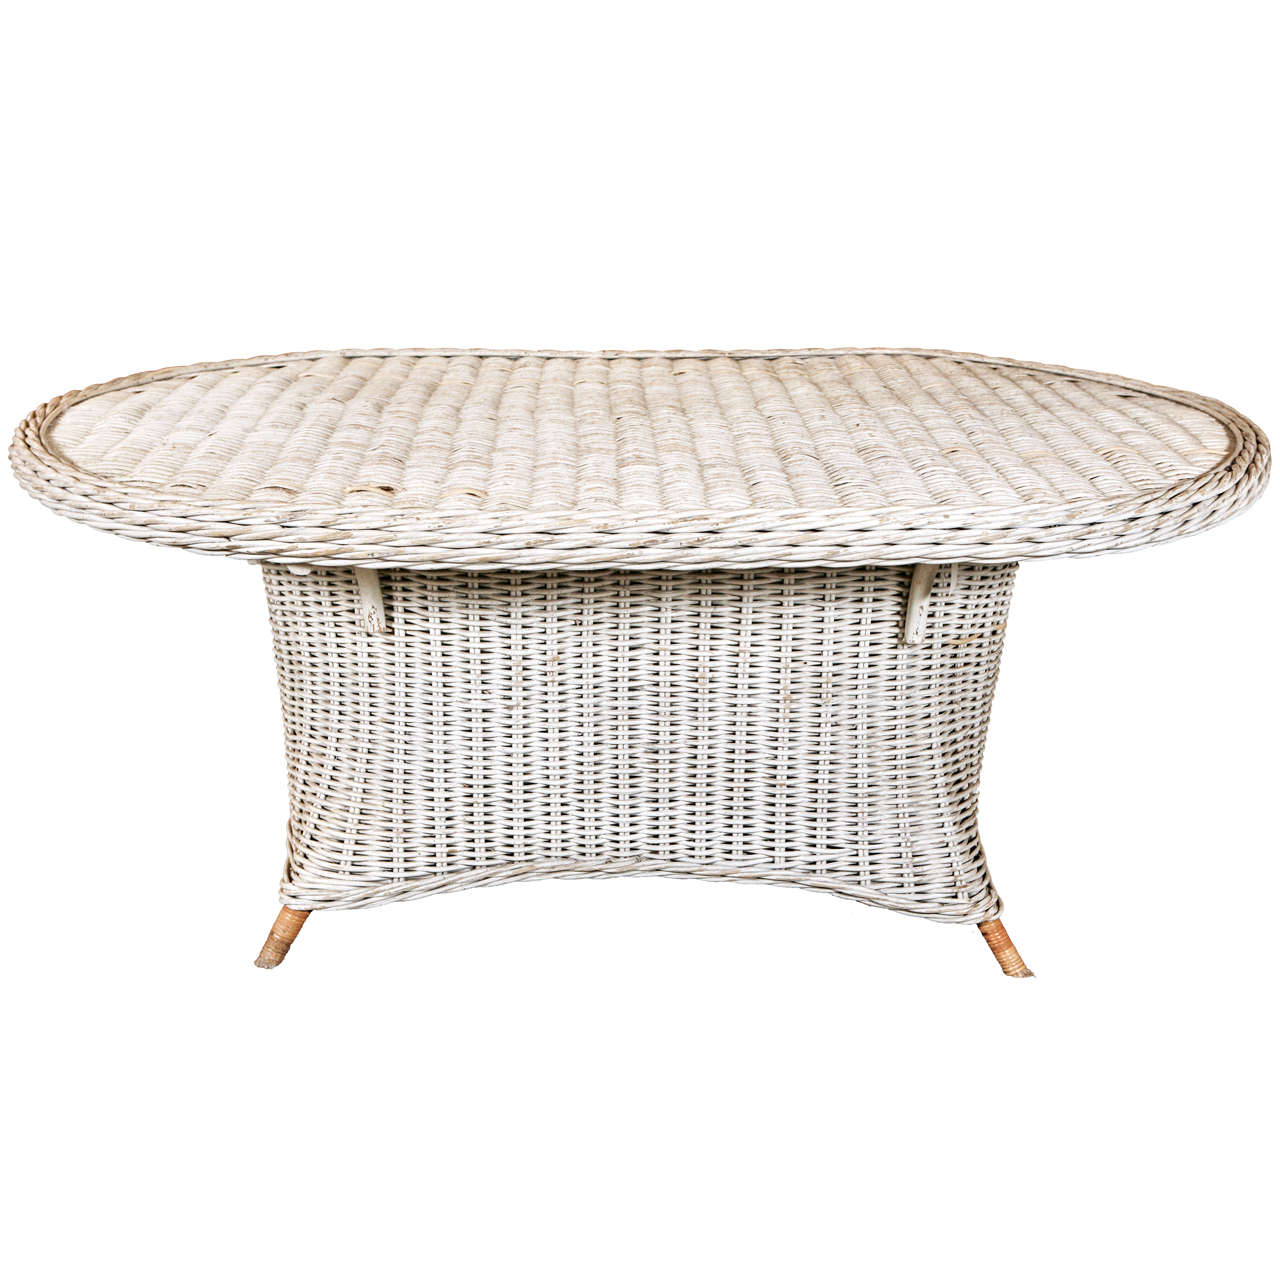 Large Wicker Table At 1stdibs